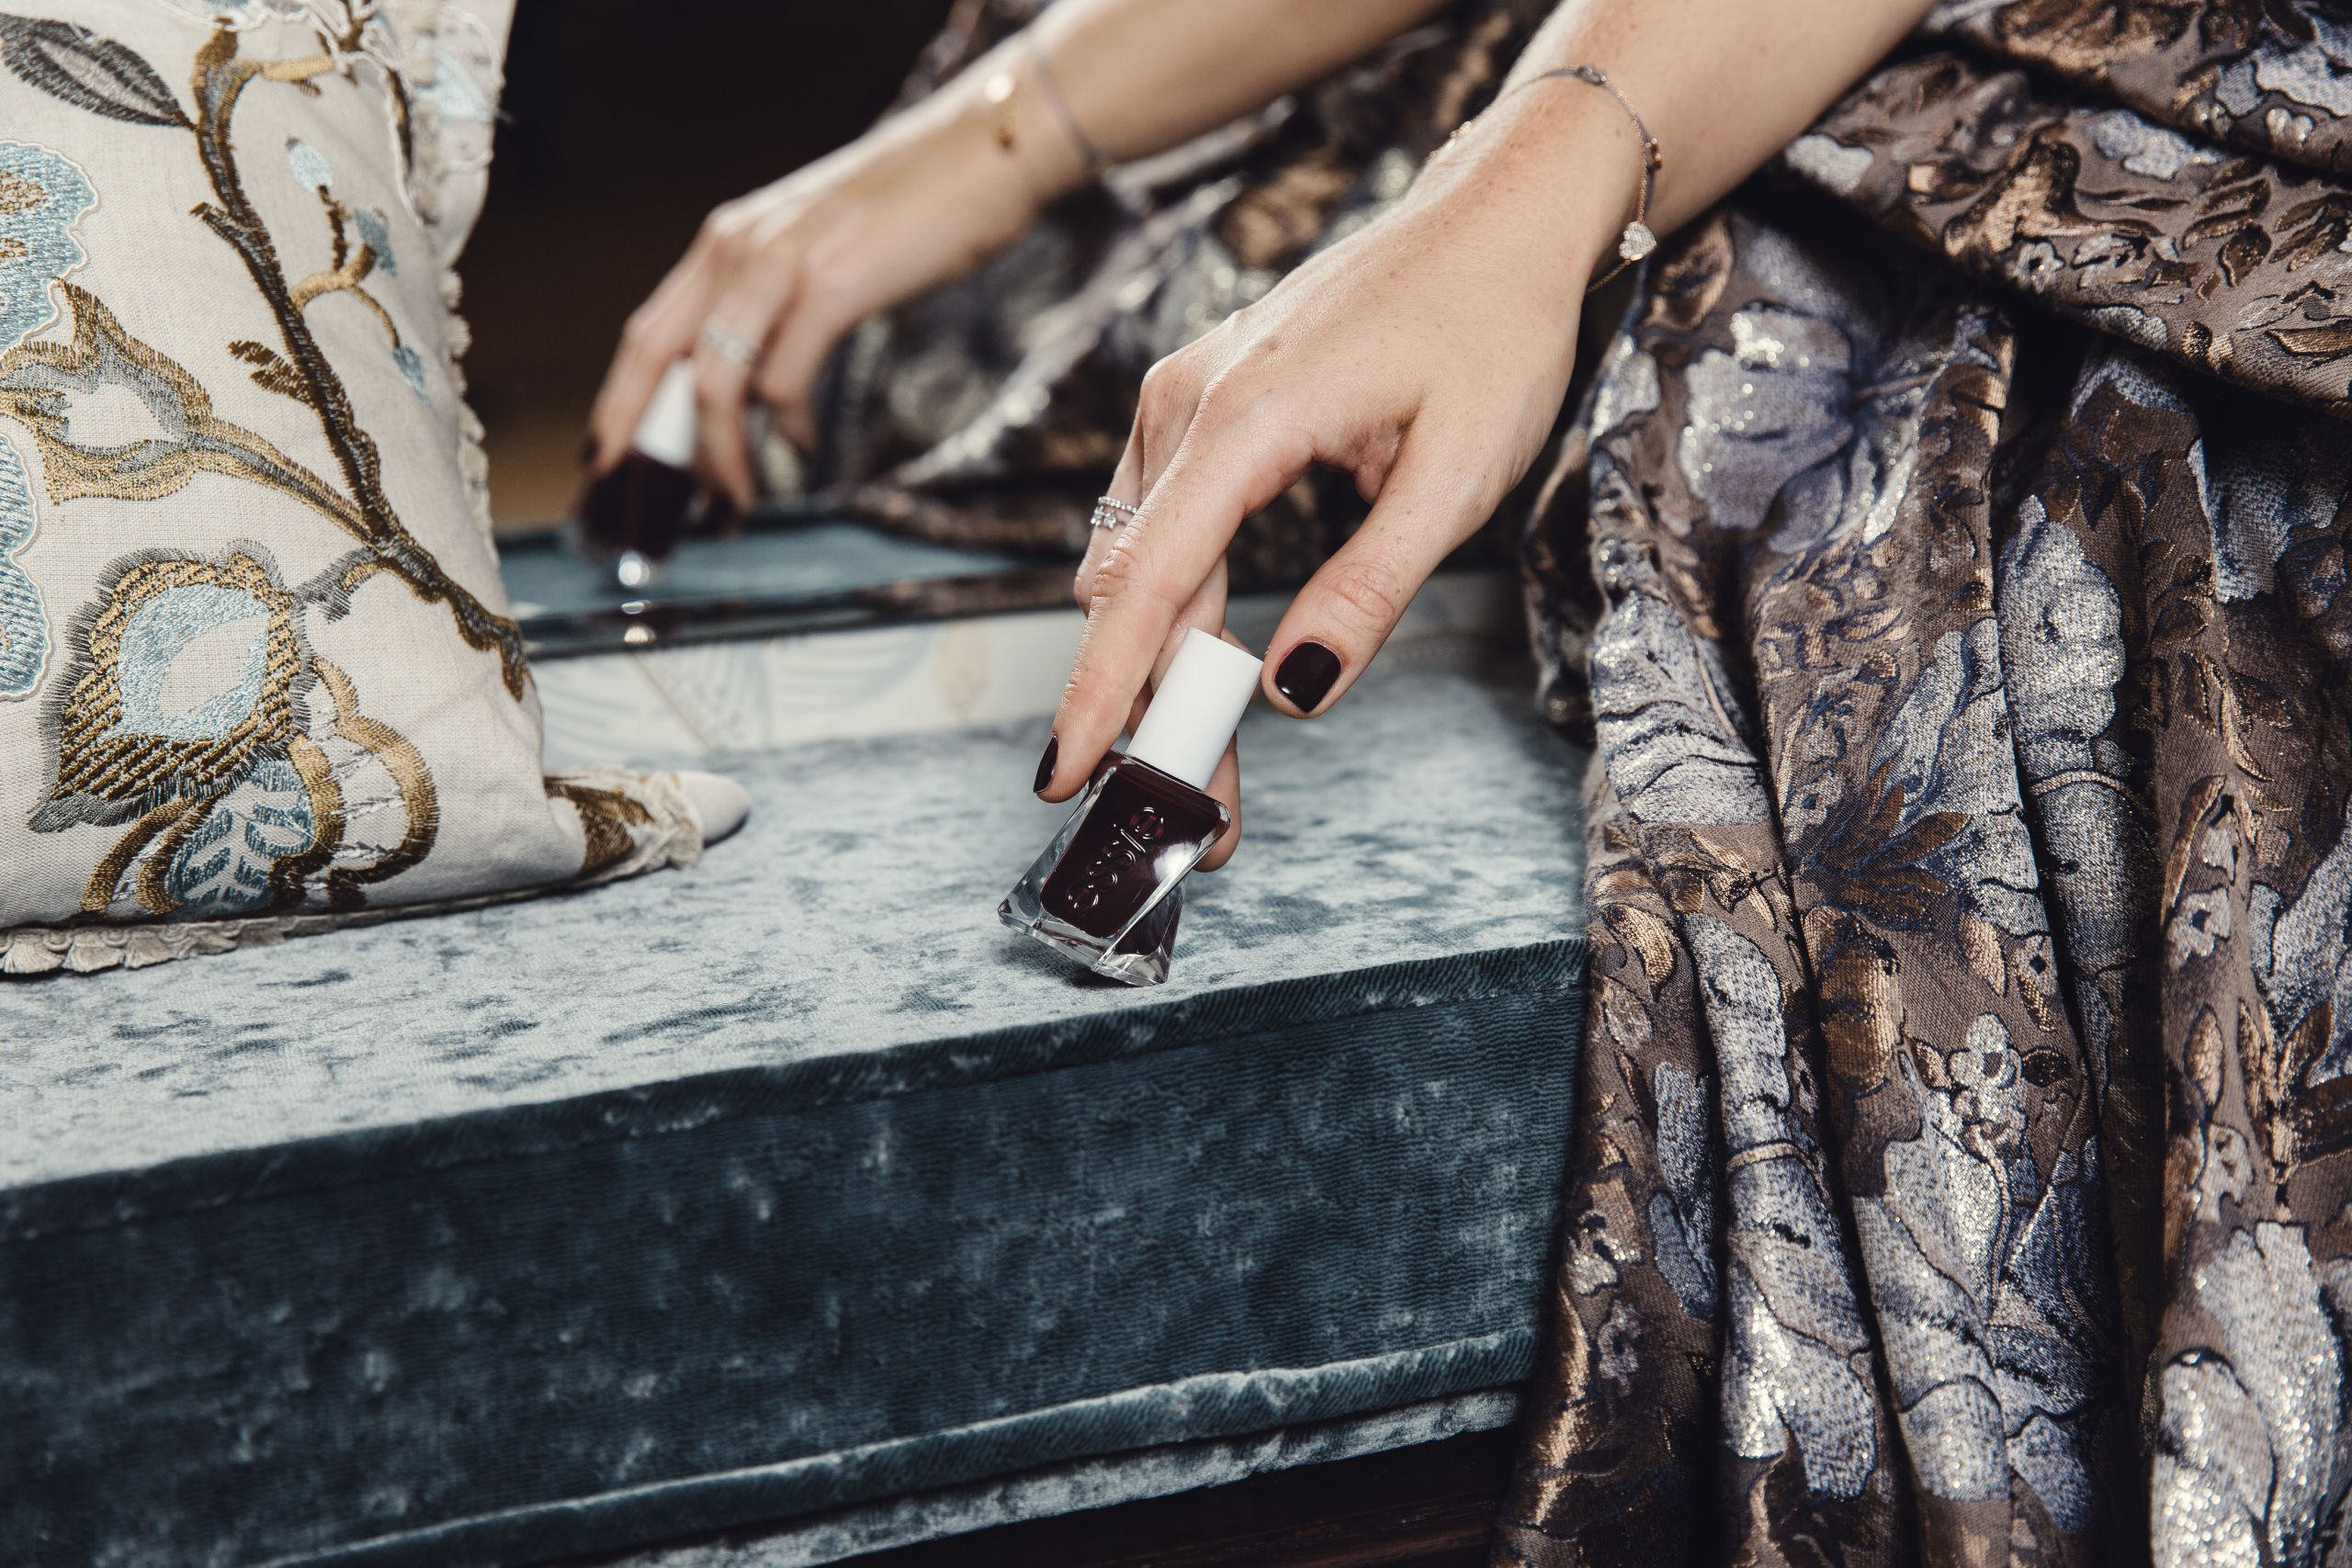 long-lasting manicure at home: essie gel couture | Love Daily Dose